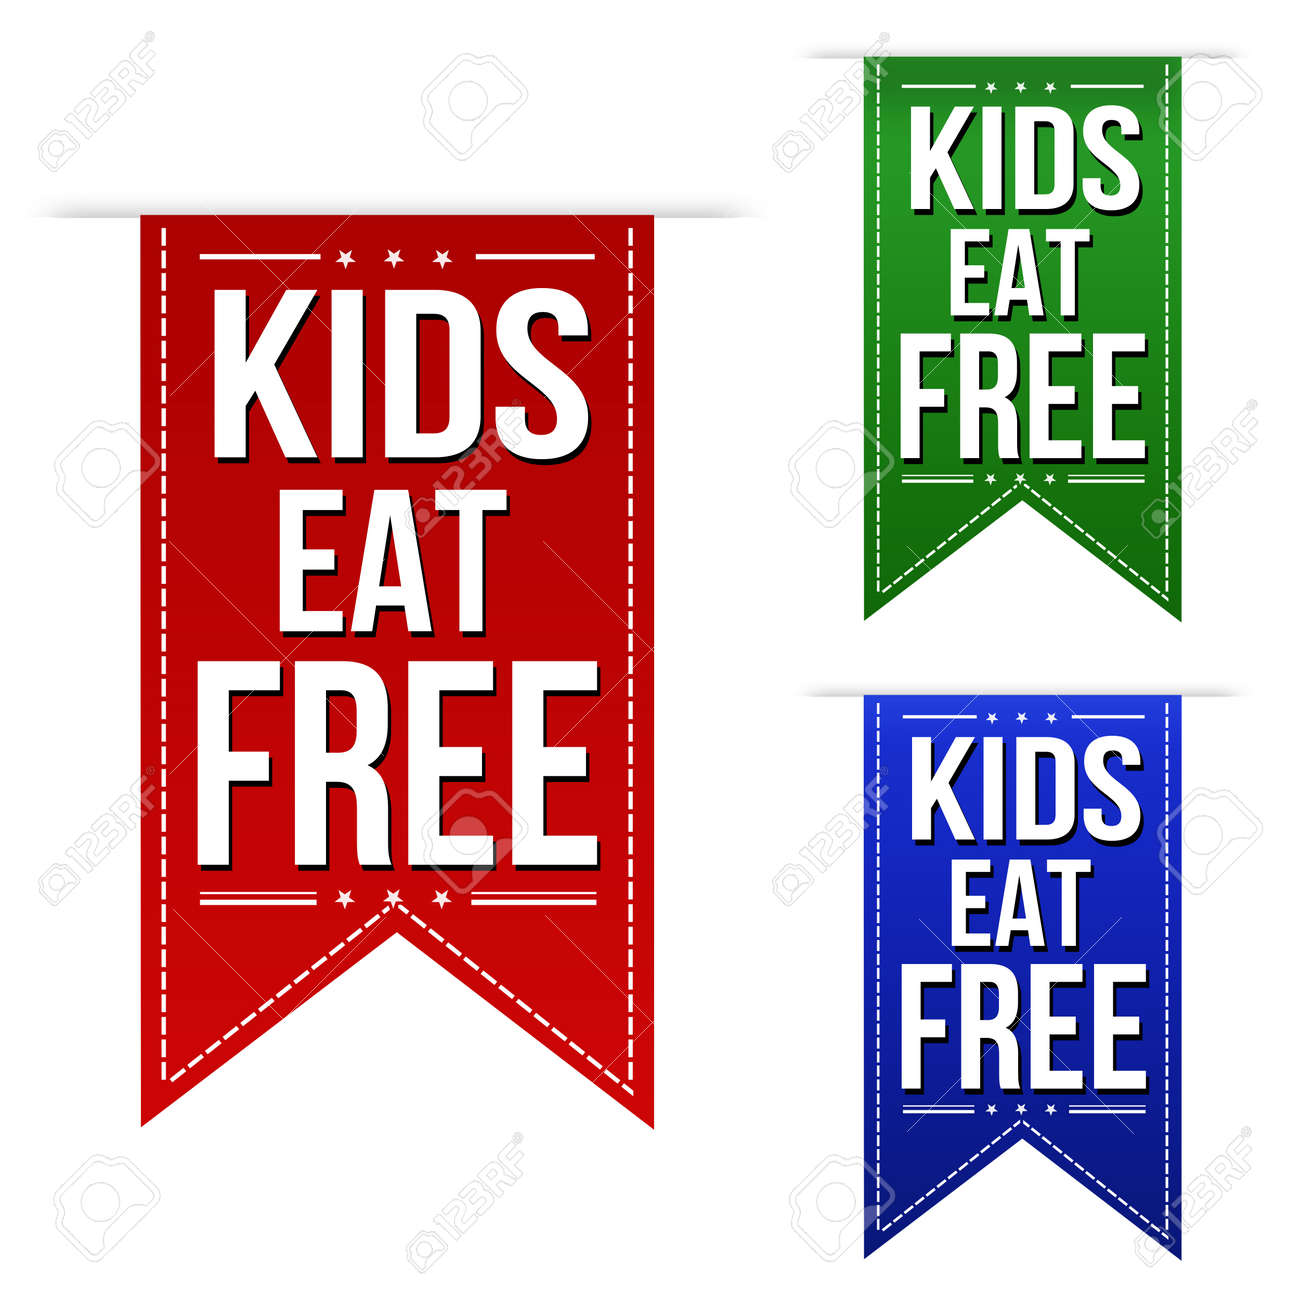 kids eat free banners design set over a white background royalty